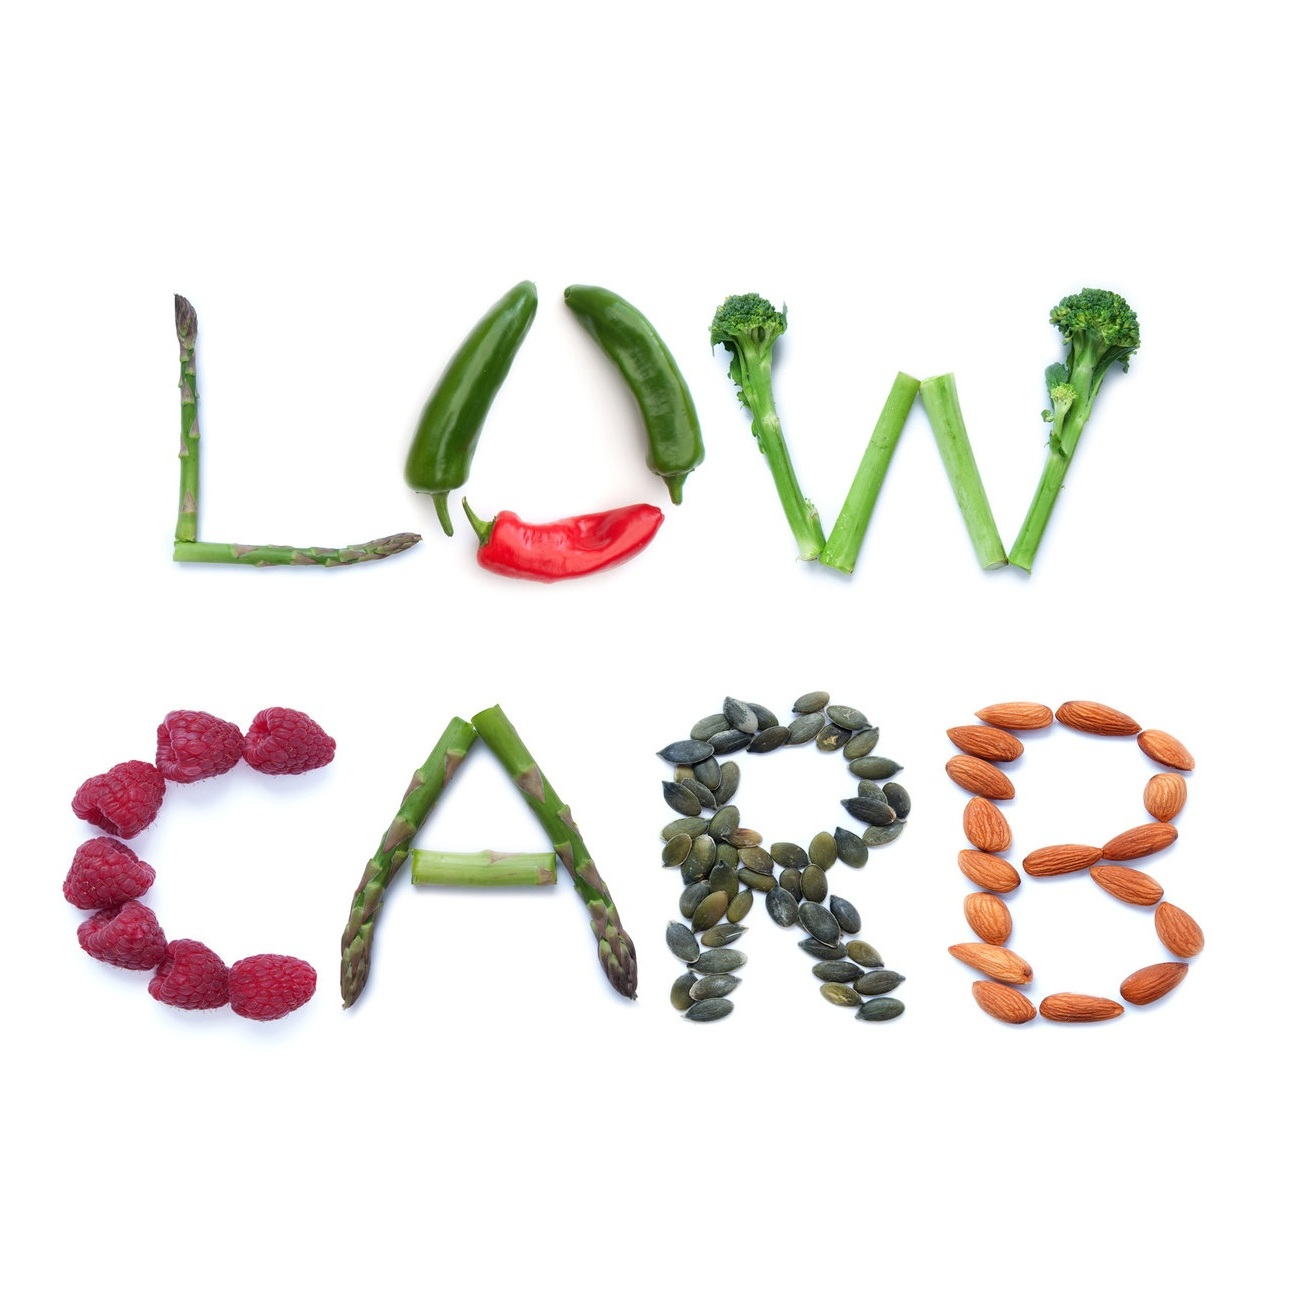 What Are The Benefits Of Eating A Low Carb Diet? -